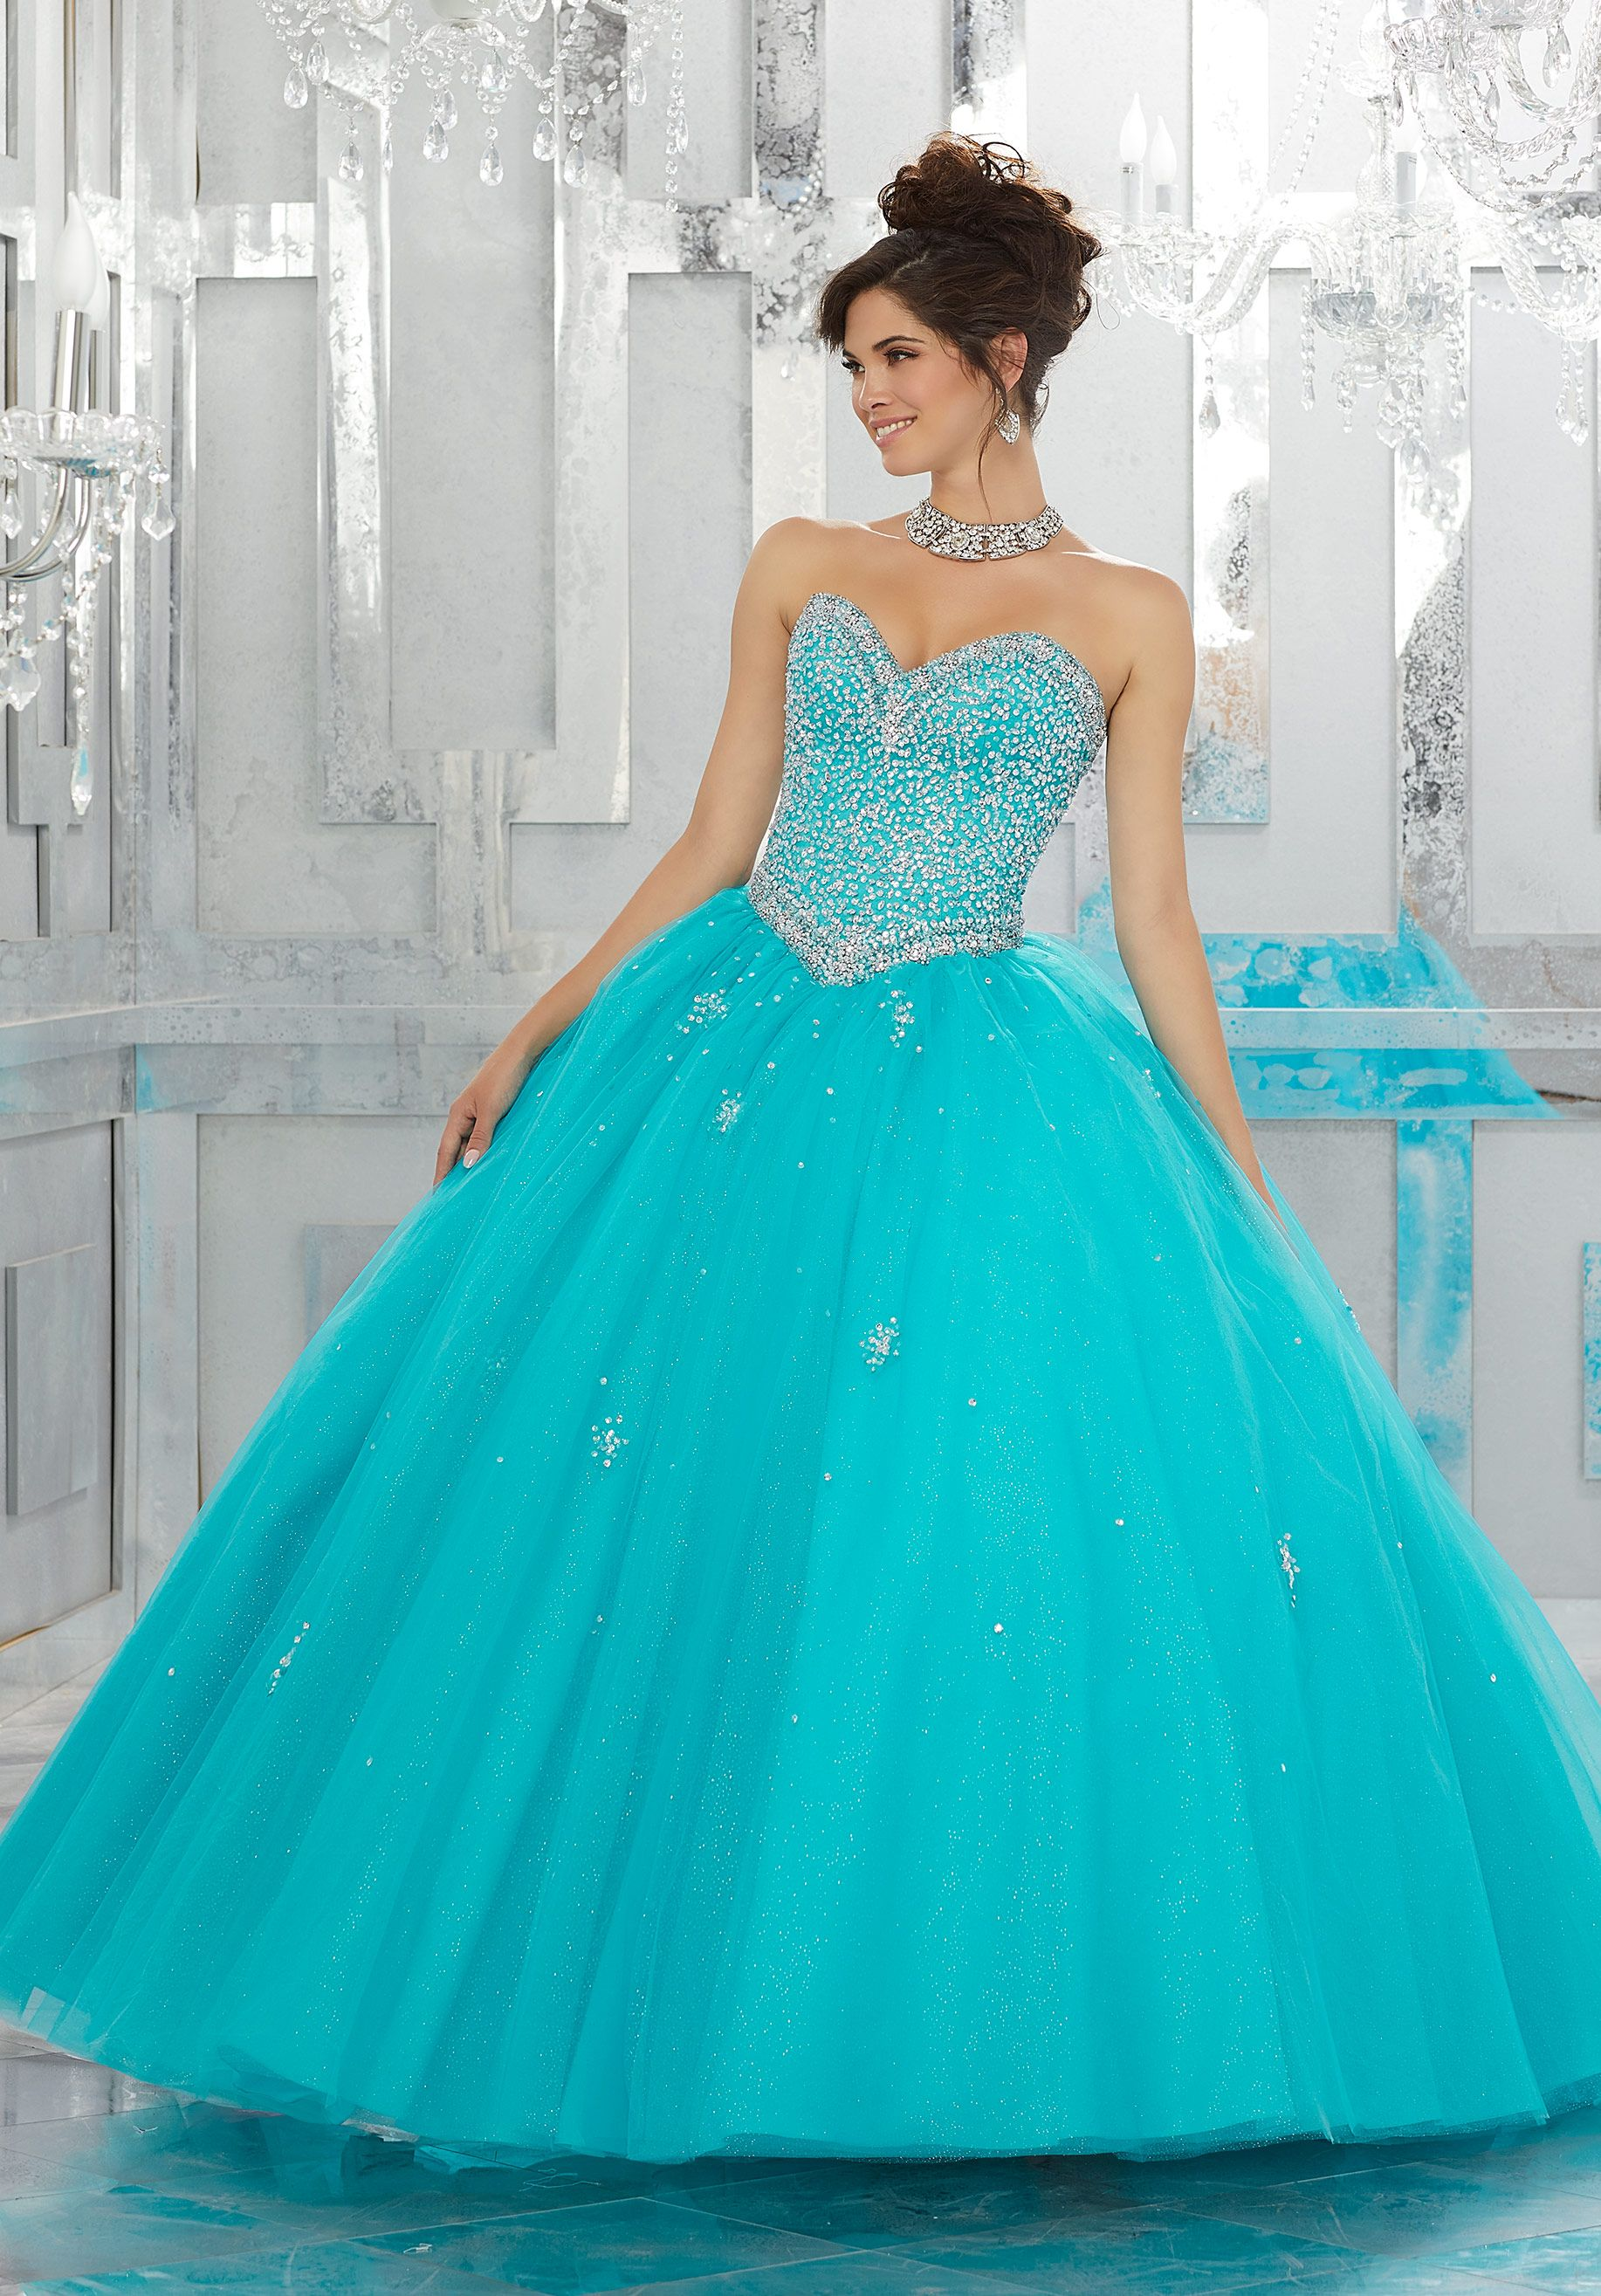 Aqua and fit for a fairytale this tulle quinceañera ball gown